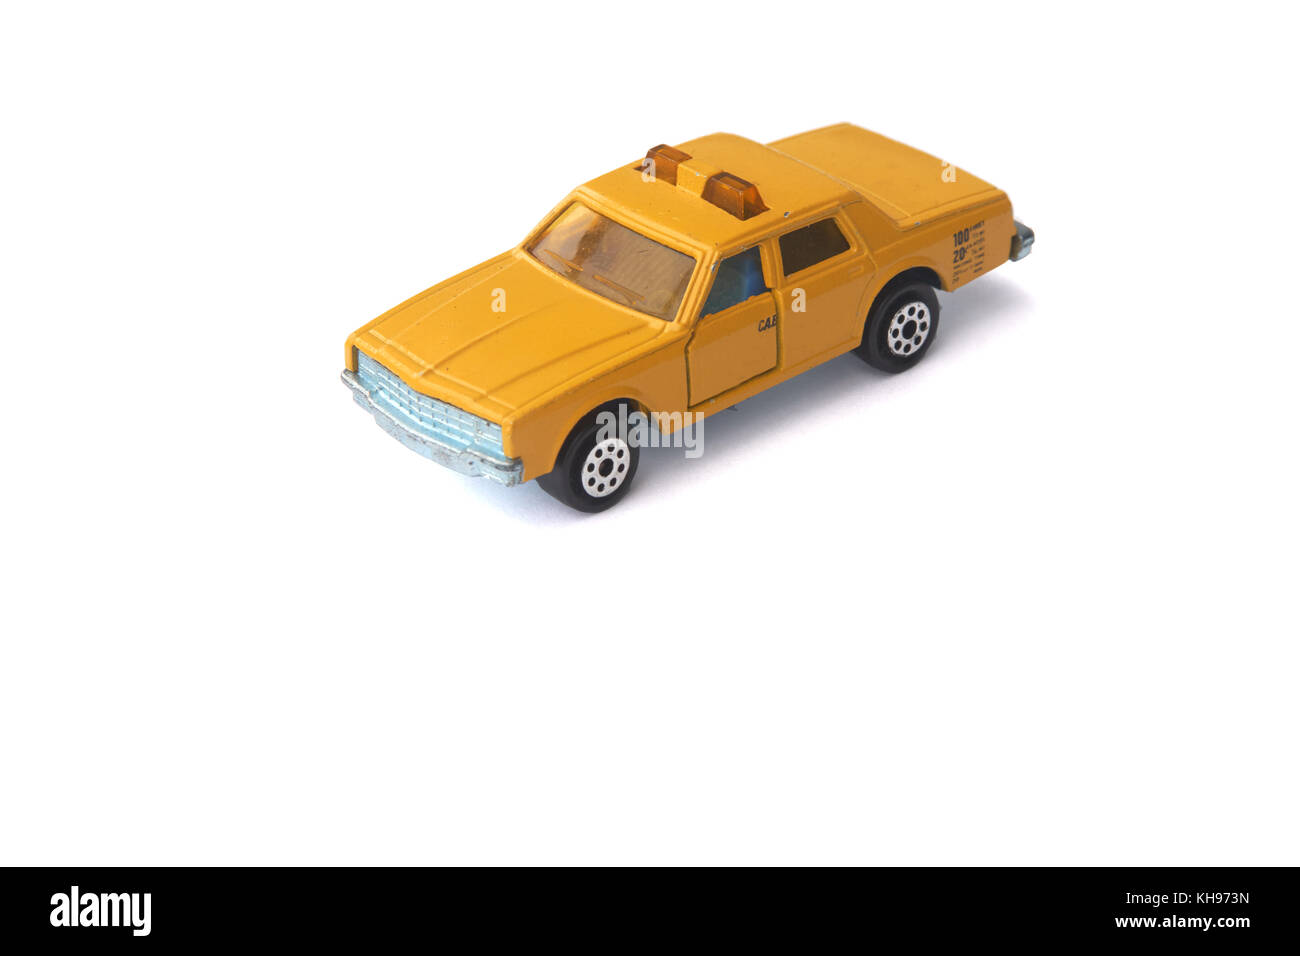 Isolated toy taxi car - Stock Image